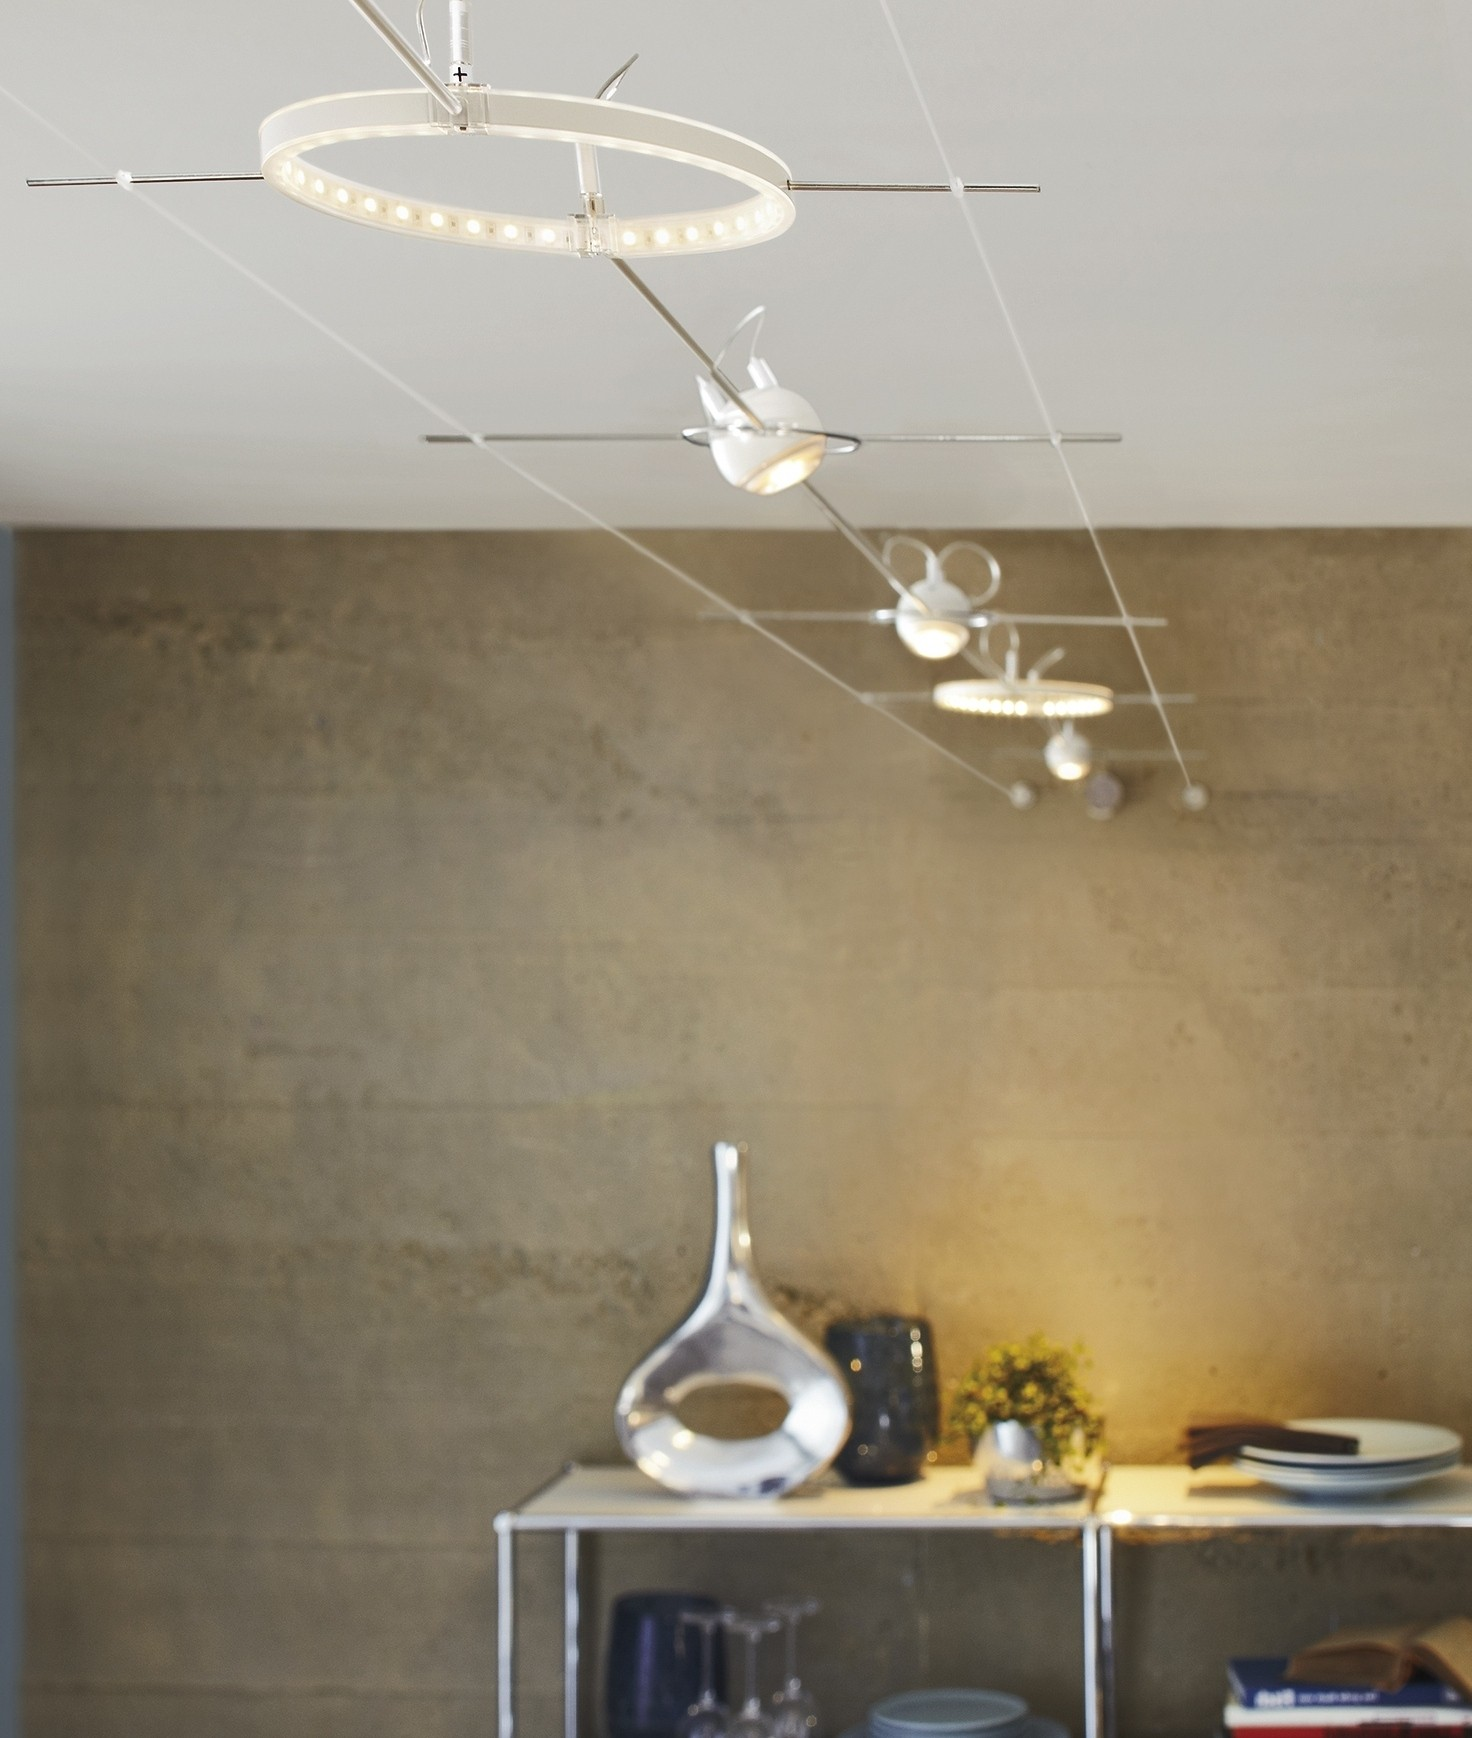 Paulmann Airled track lighting